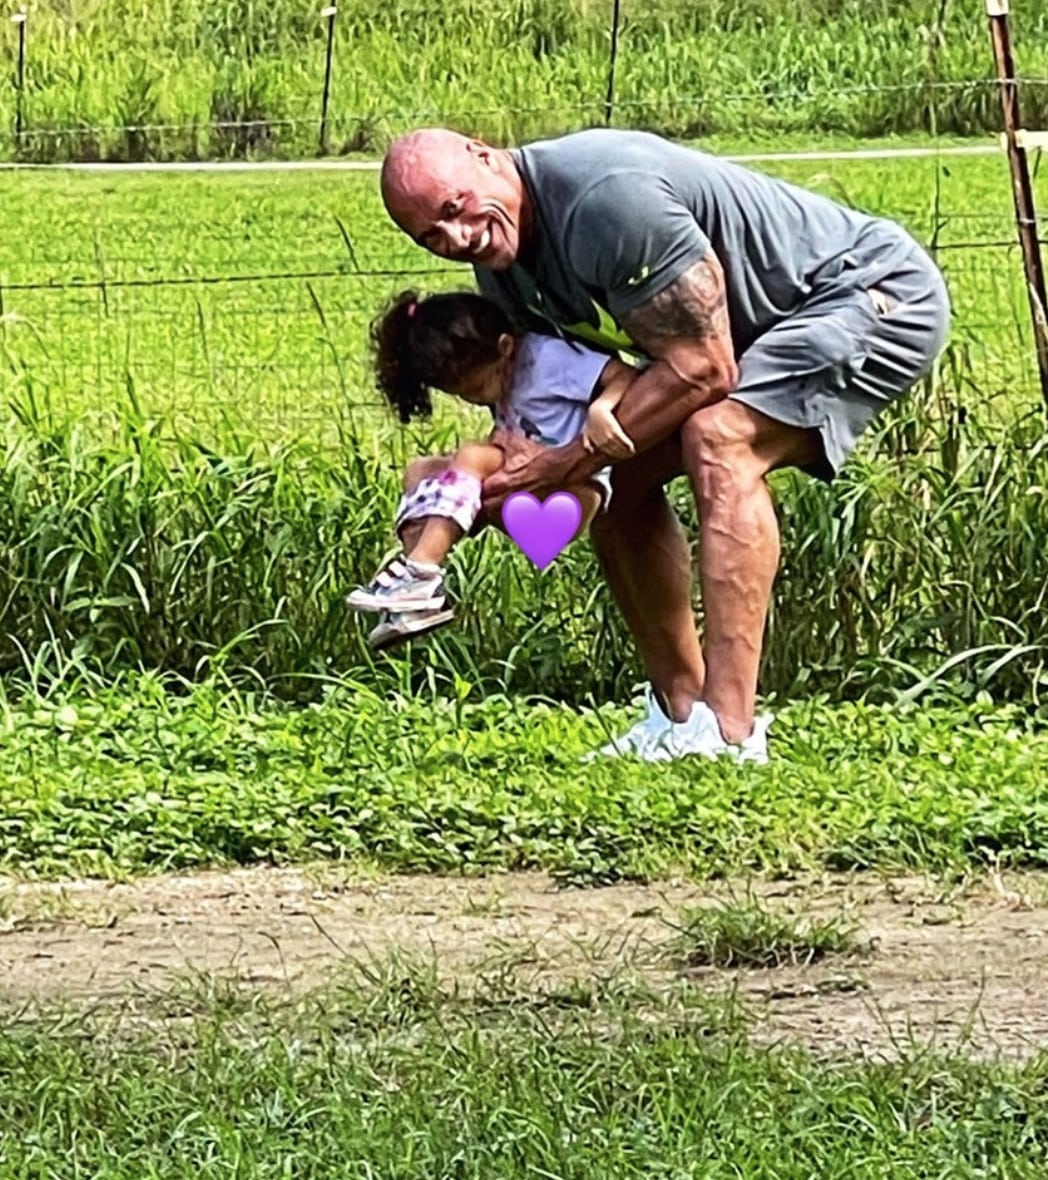 dwayne johnson shares photo of tiana peeing on his sneakers